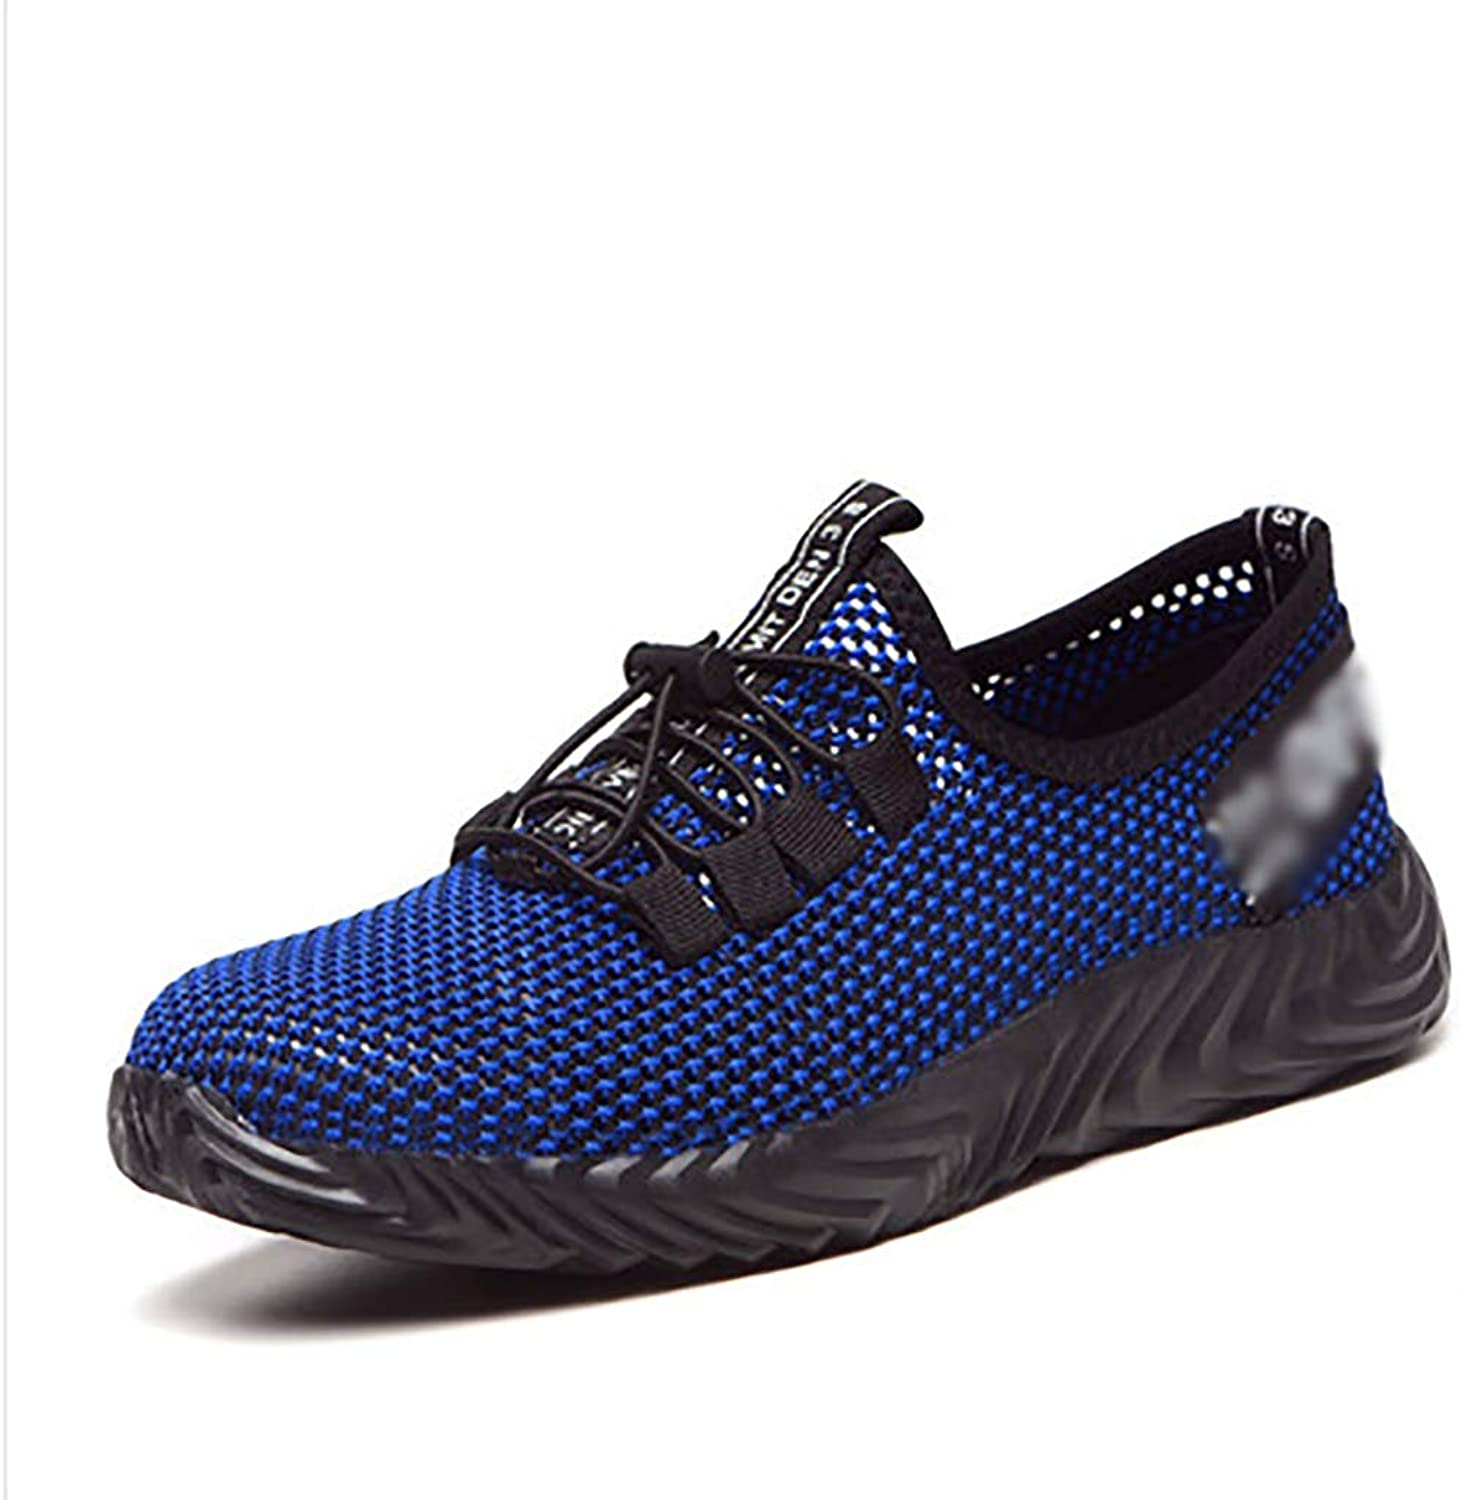 Work shoes Work shoes work shoes lightweight comfortable men and women casual shoes work safety shoes steel toe caps mesh surface plate anti-piercing labor insurance shoes summer breathable deodorant